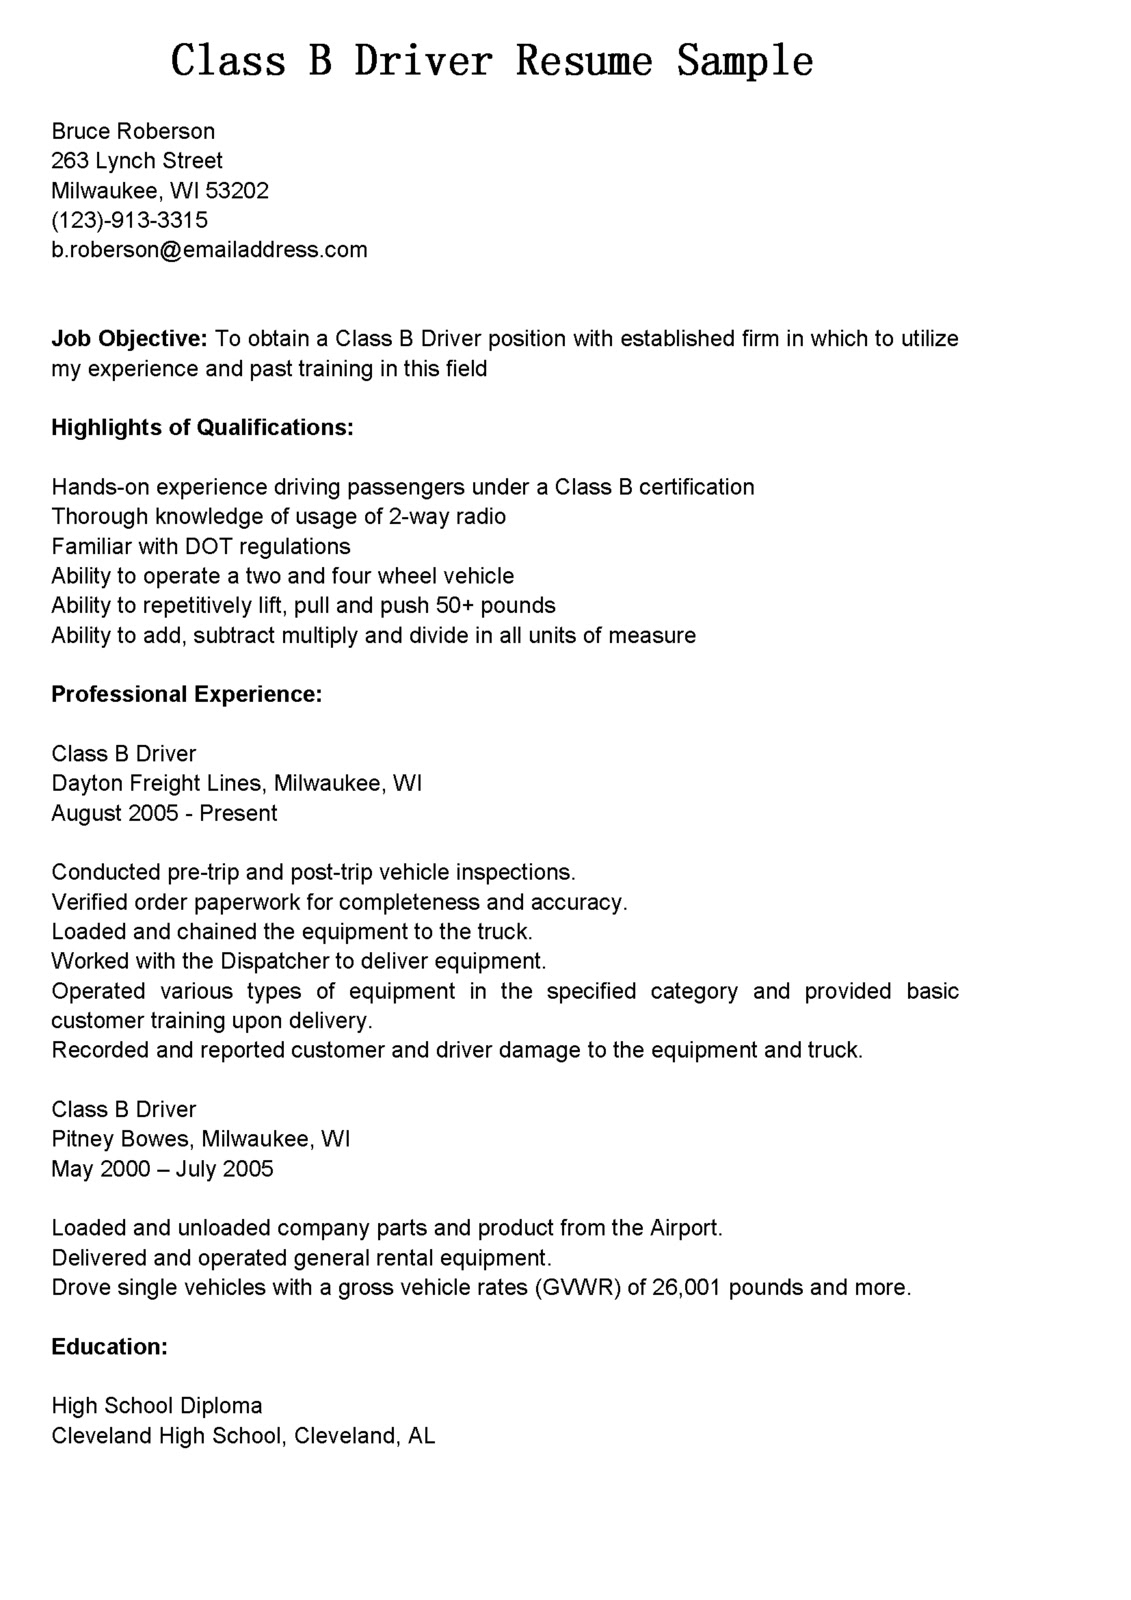 driver resumes resume sample truck duties templates wordpad format for h1b visa Resume Class A Truck Driver Duties Resume Sample